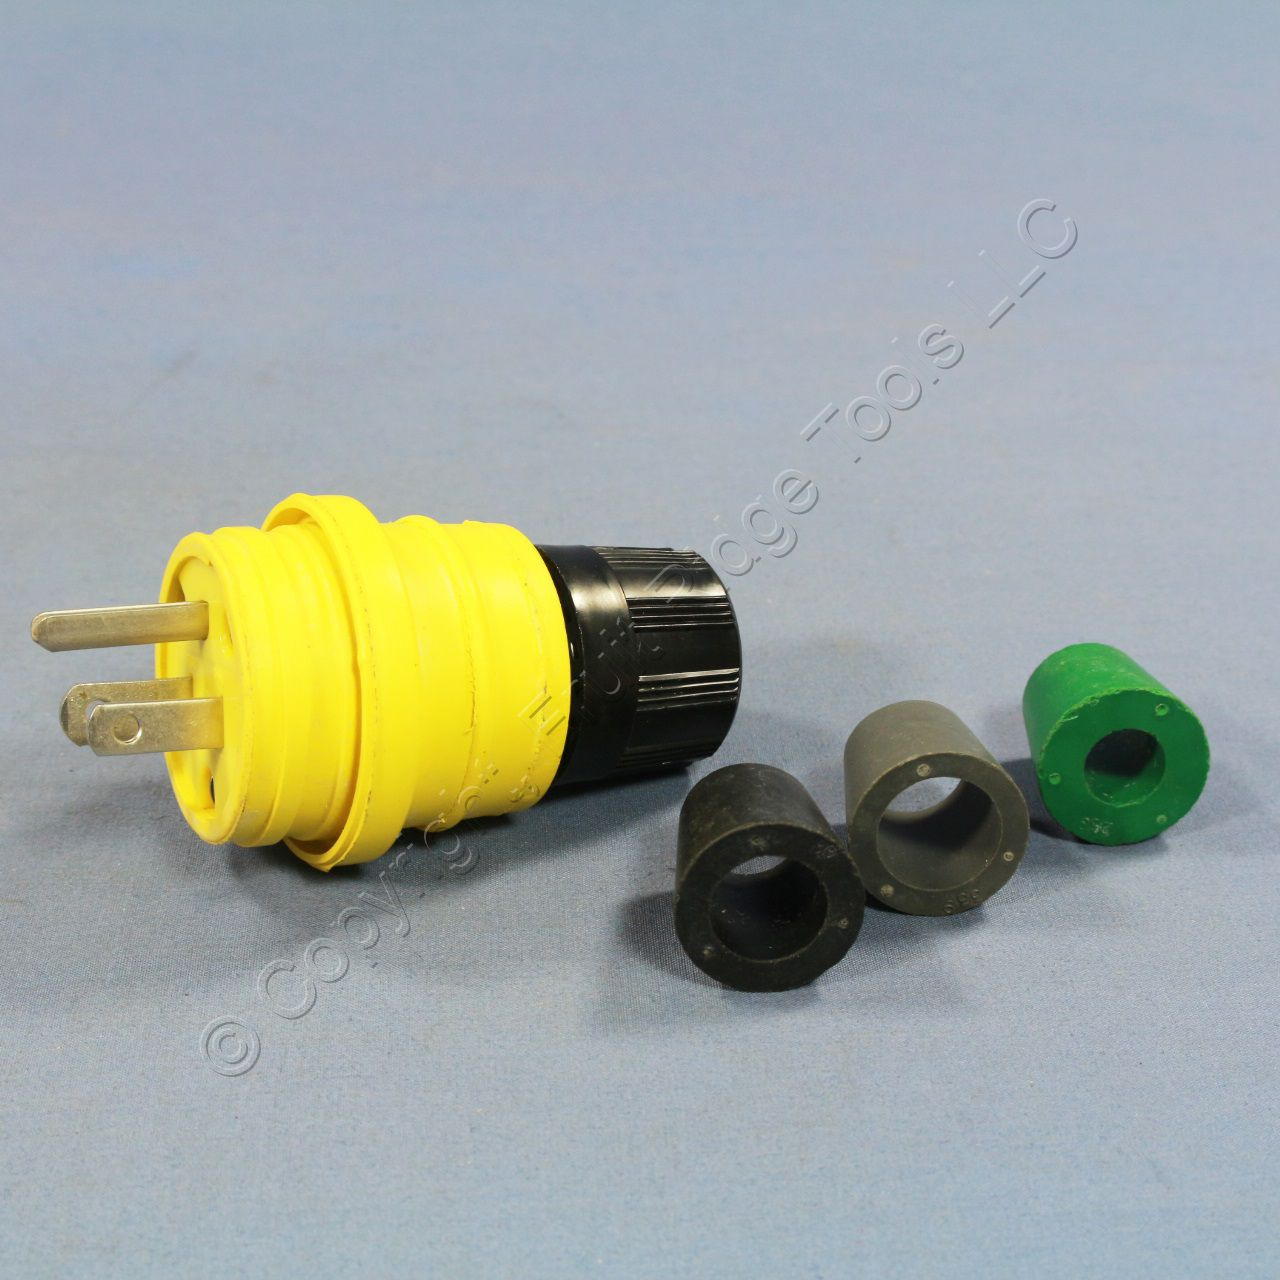 Pass and Seymour Yellow Male Watertight Straight Blade Plug 5-15 15A ...